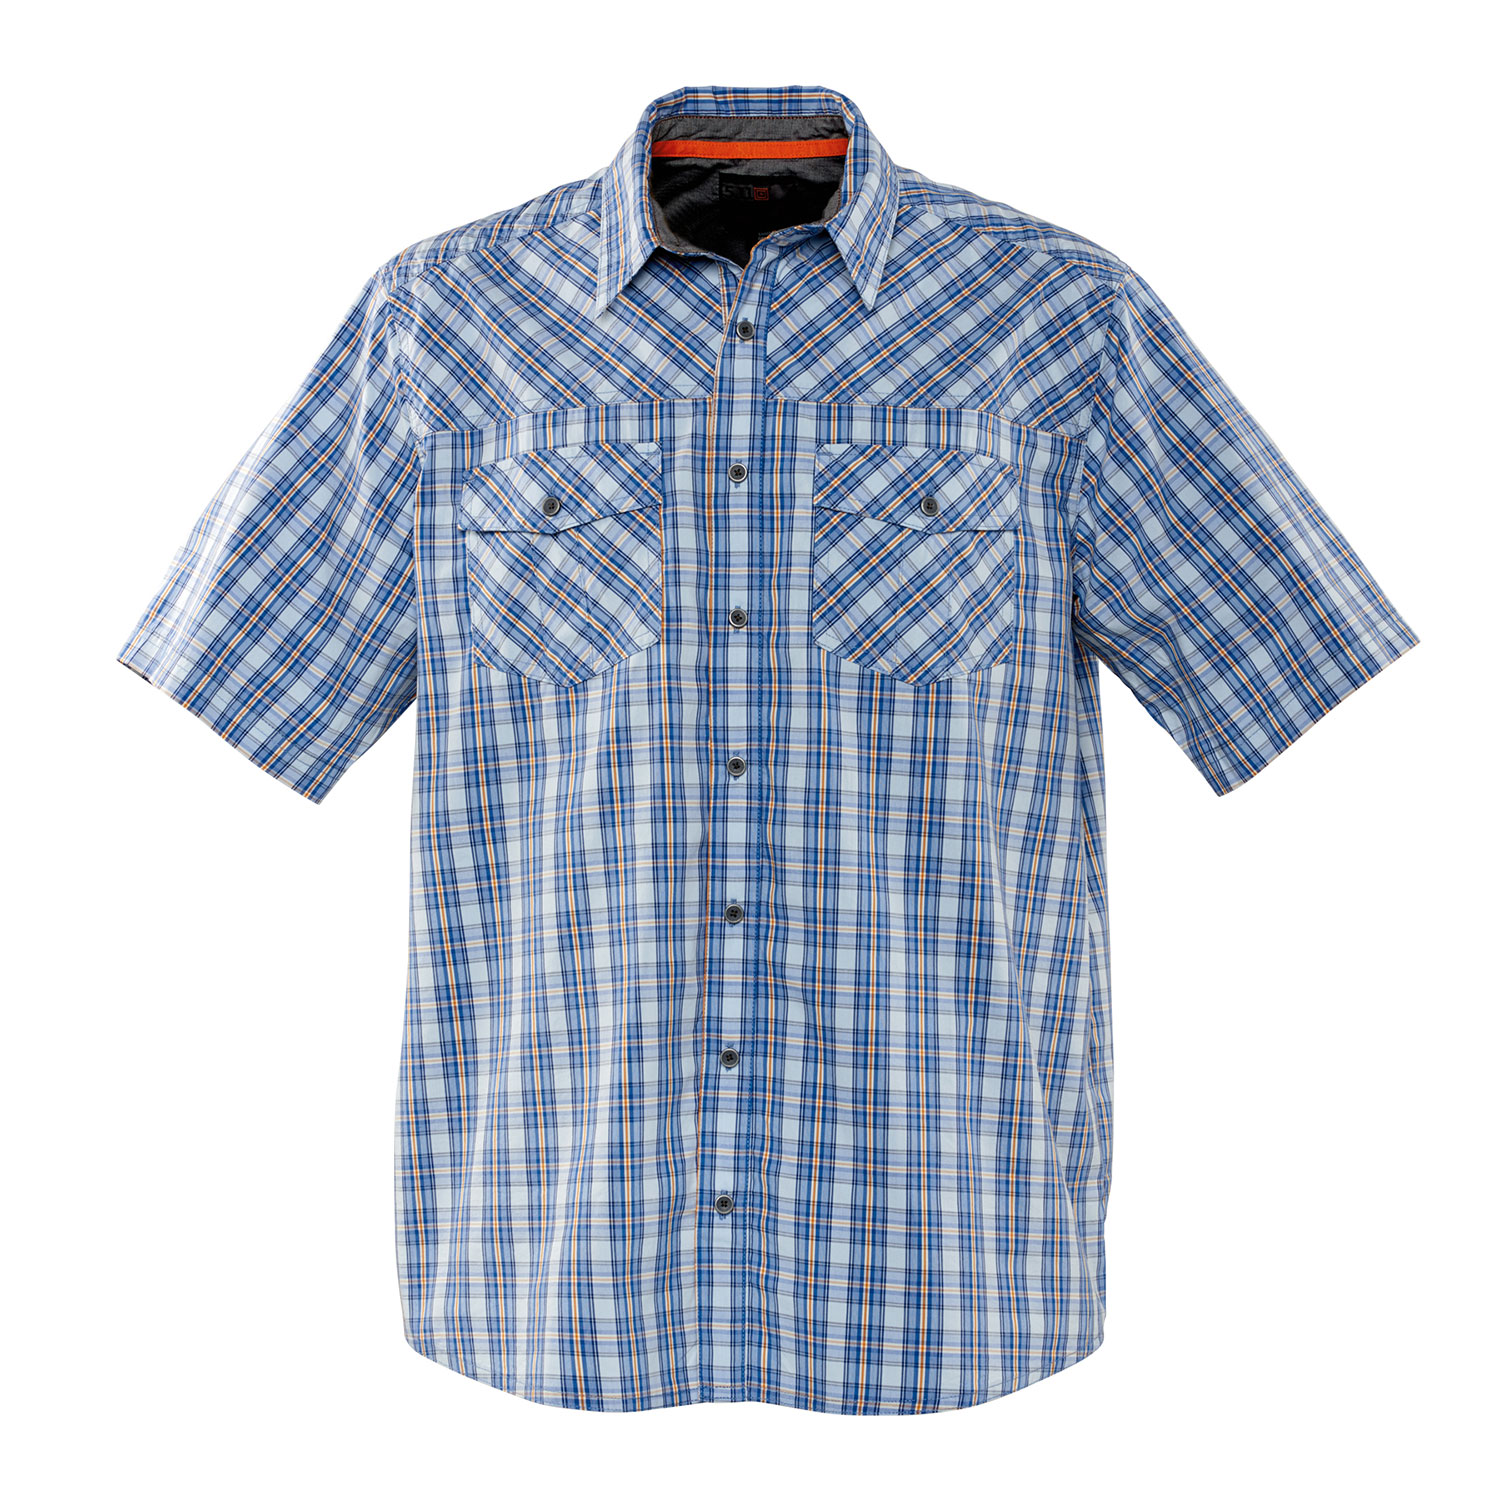 5.11 Tactical Double Flex Covert Shirt